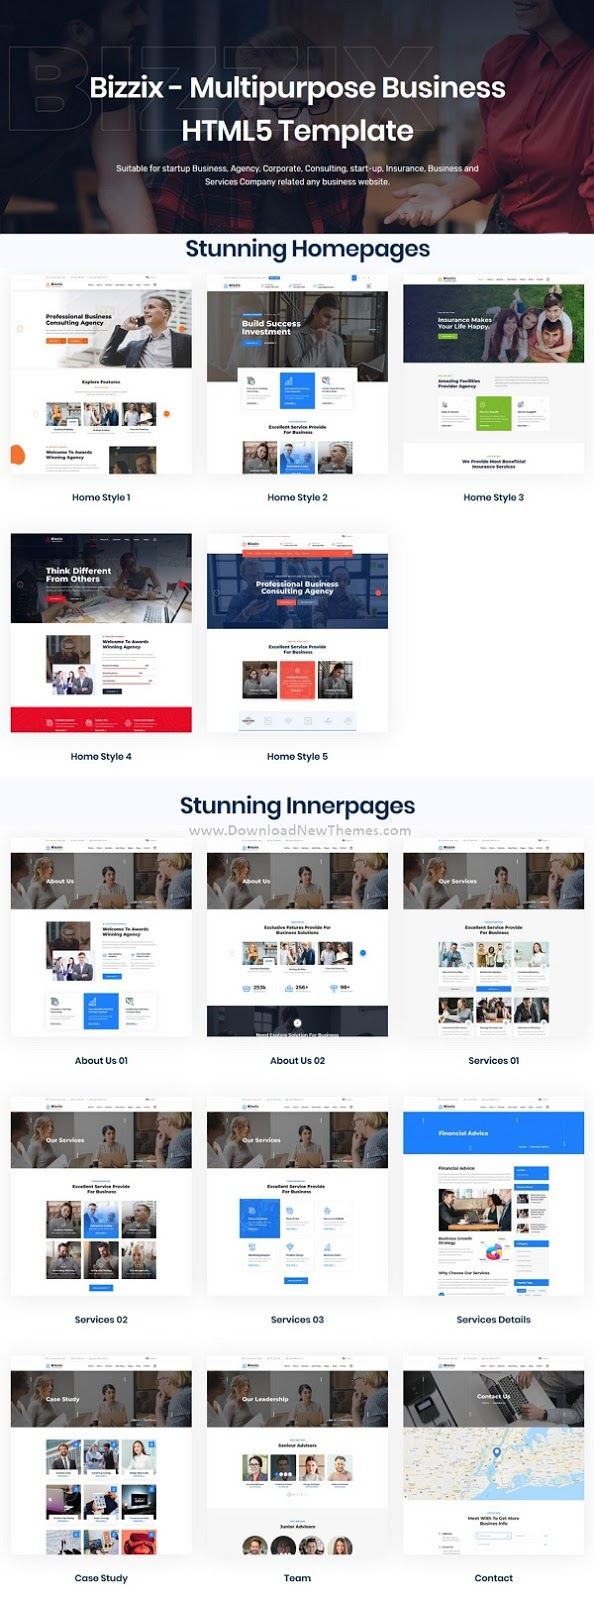 Bizzix - Multipurpose Business HTML5 Template